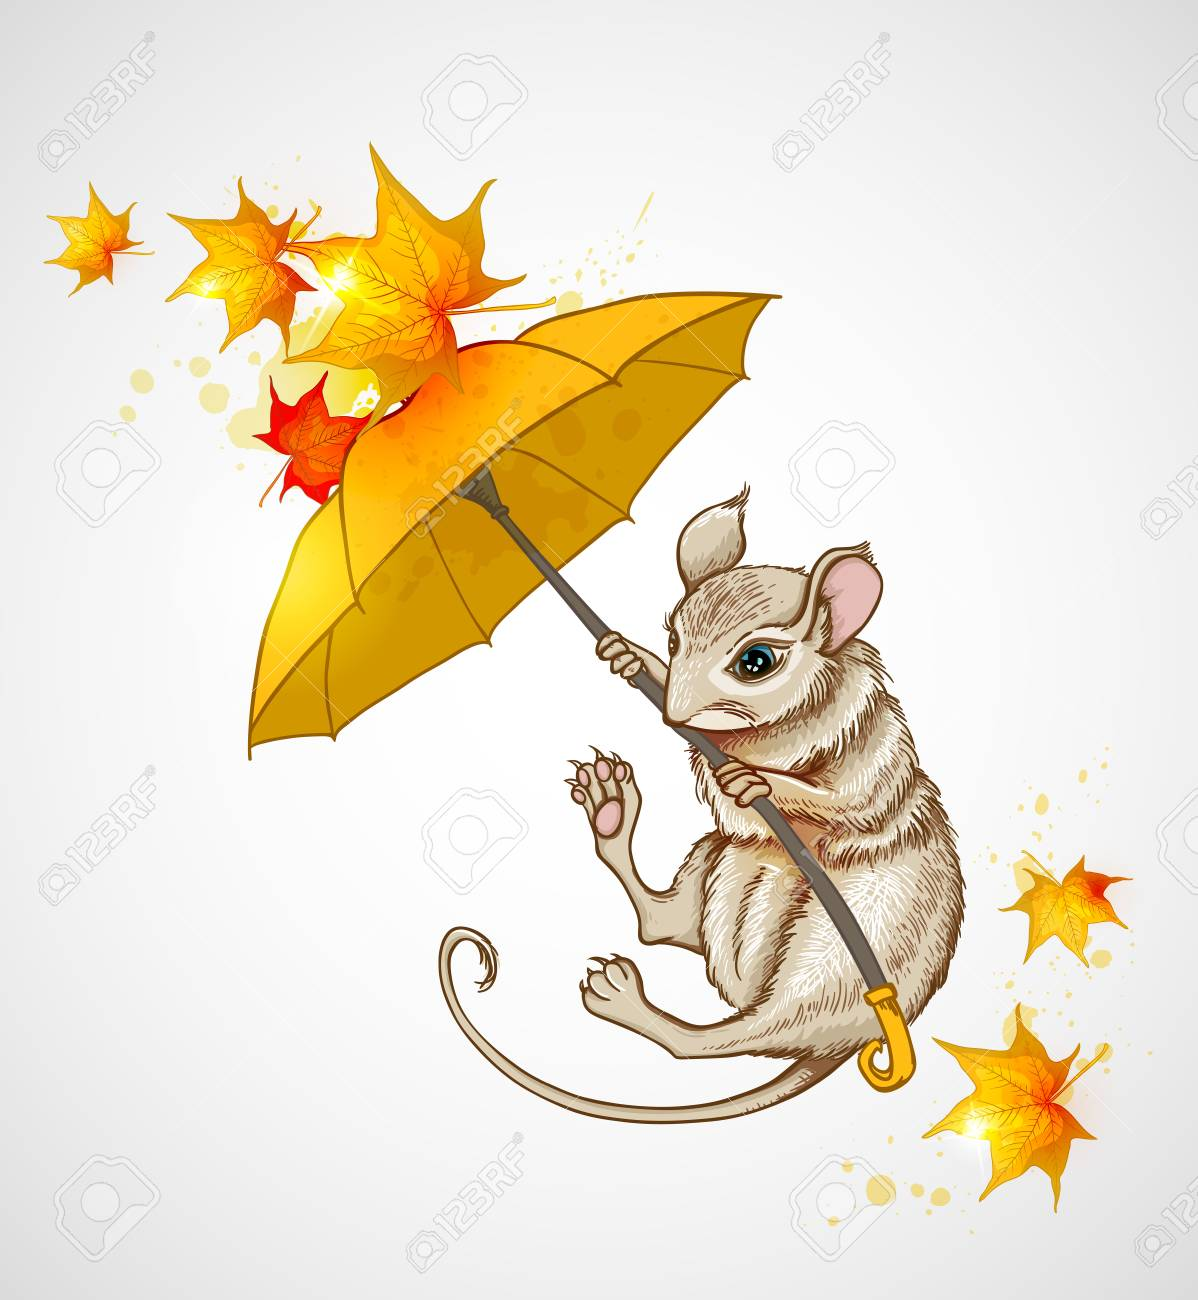 Autumn background with mouse flying under the umbrella - 47073748